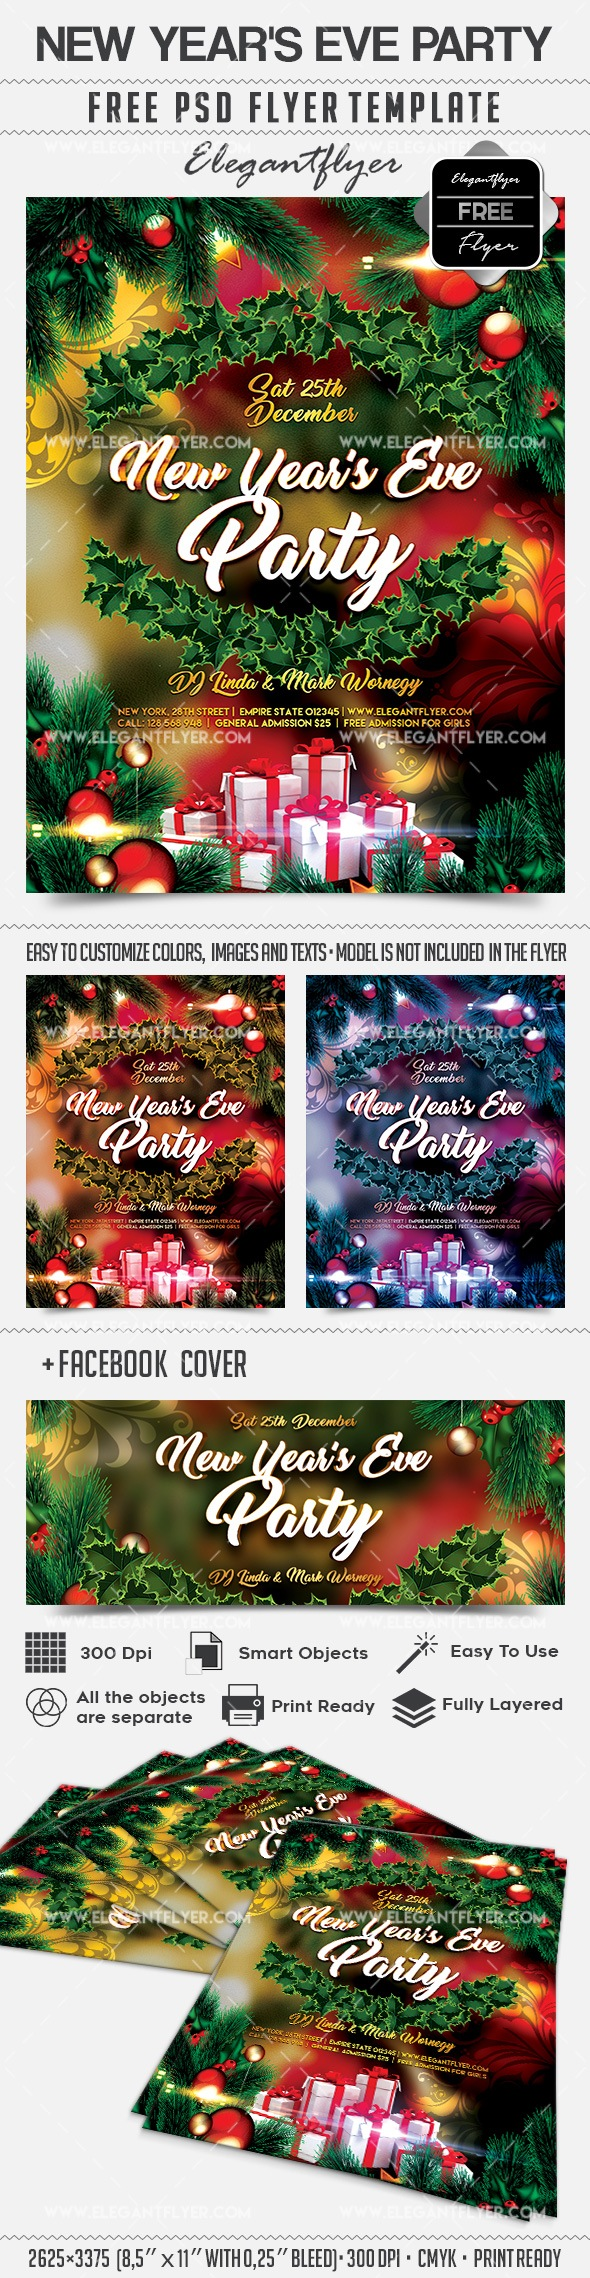 New Year's Eve Party – Free Flyer PSD Template